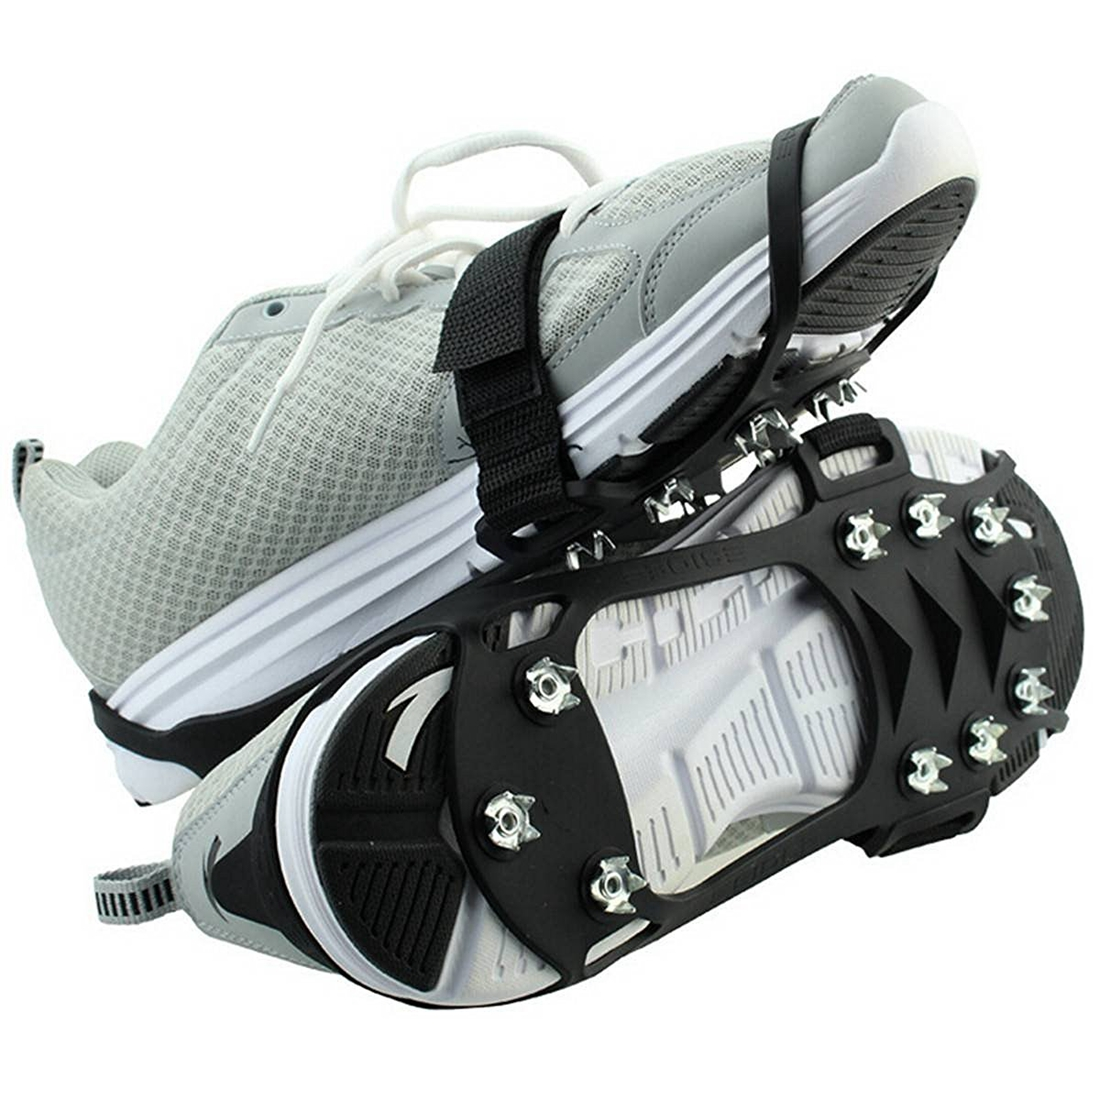 DCOS Shoe spikes Shoe claws, anti-slip crampons shoes, spikes Snow chain for the boot